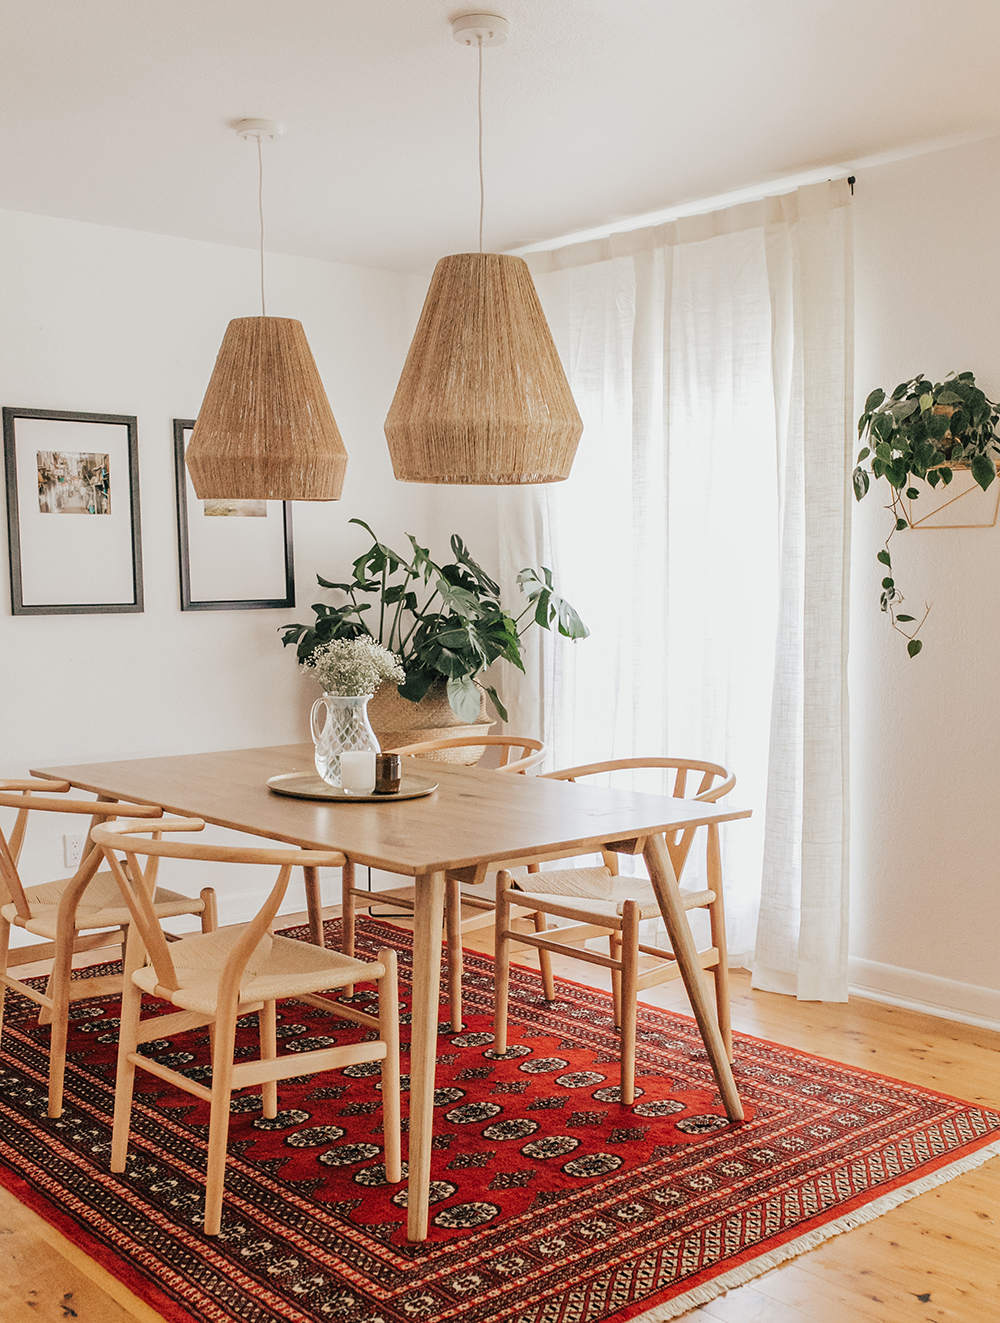 livvyland-blog-olivia-watson-austin-texas-lifestyle-blogger-modern-bohemian-bungalow-dining-room-kitchen-anthropologie-lights-2